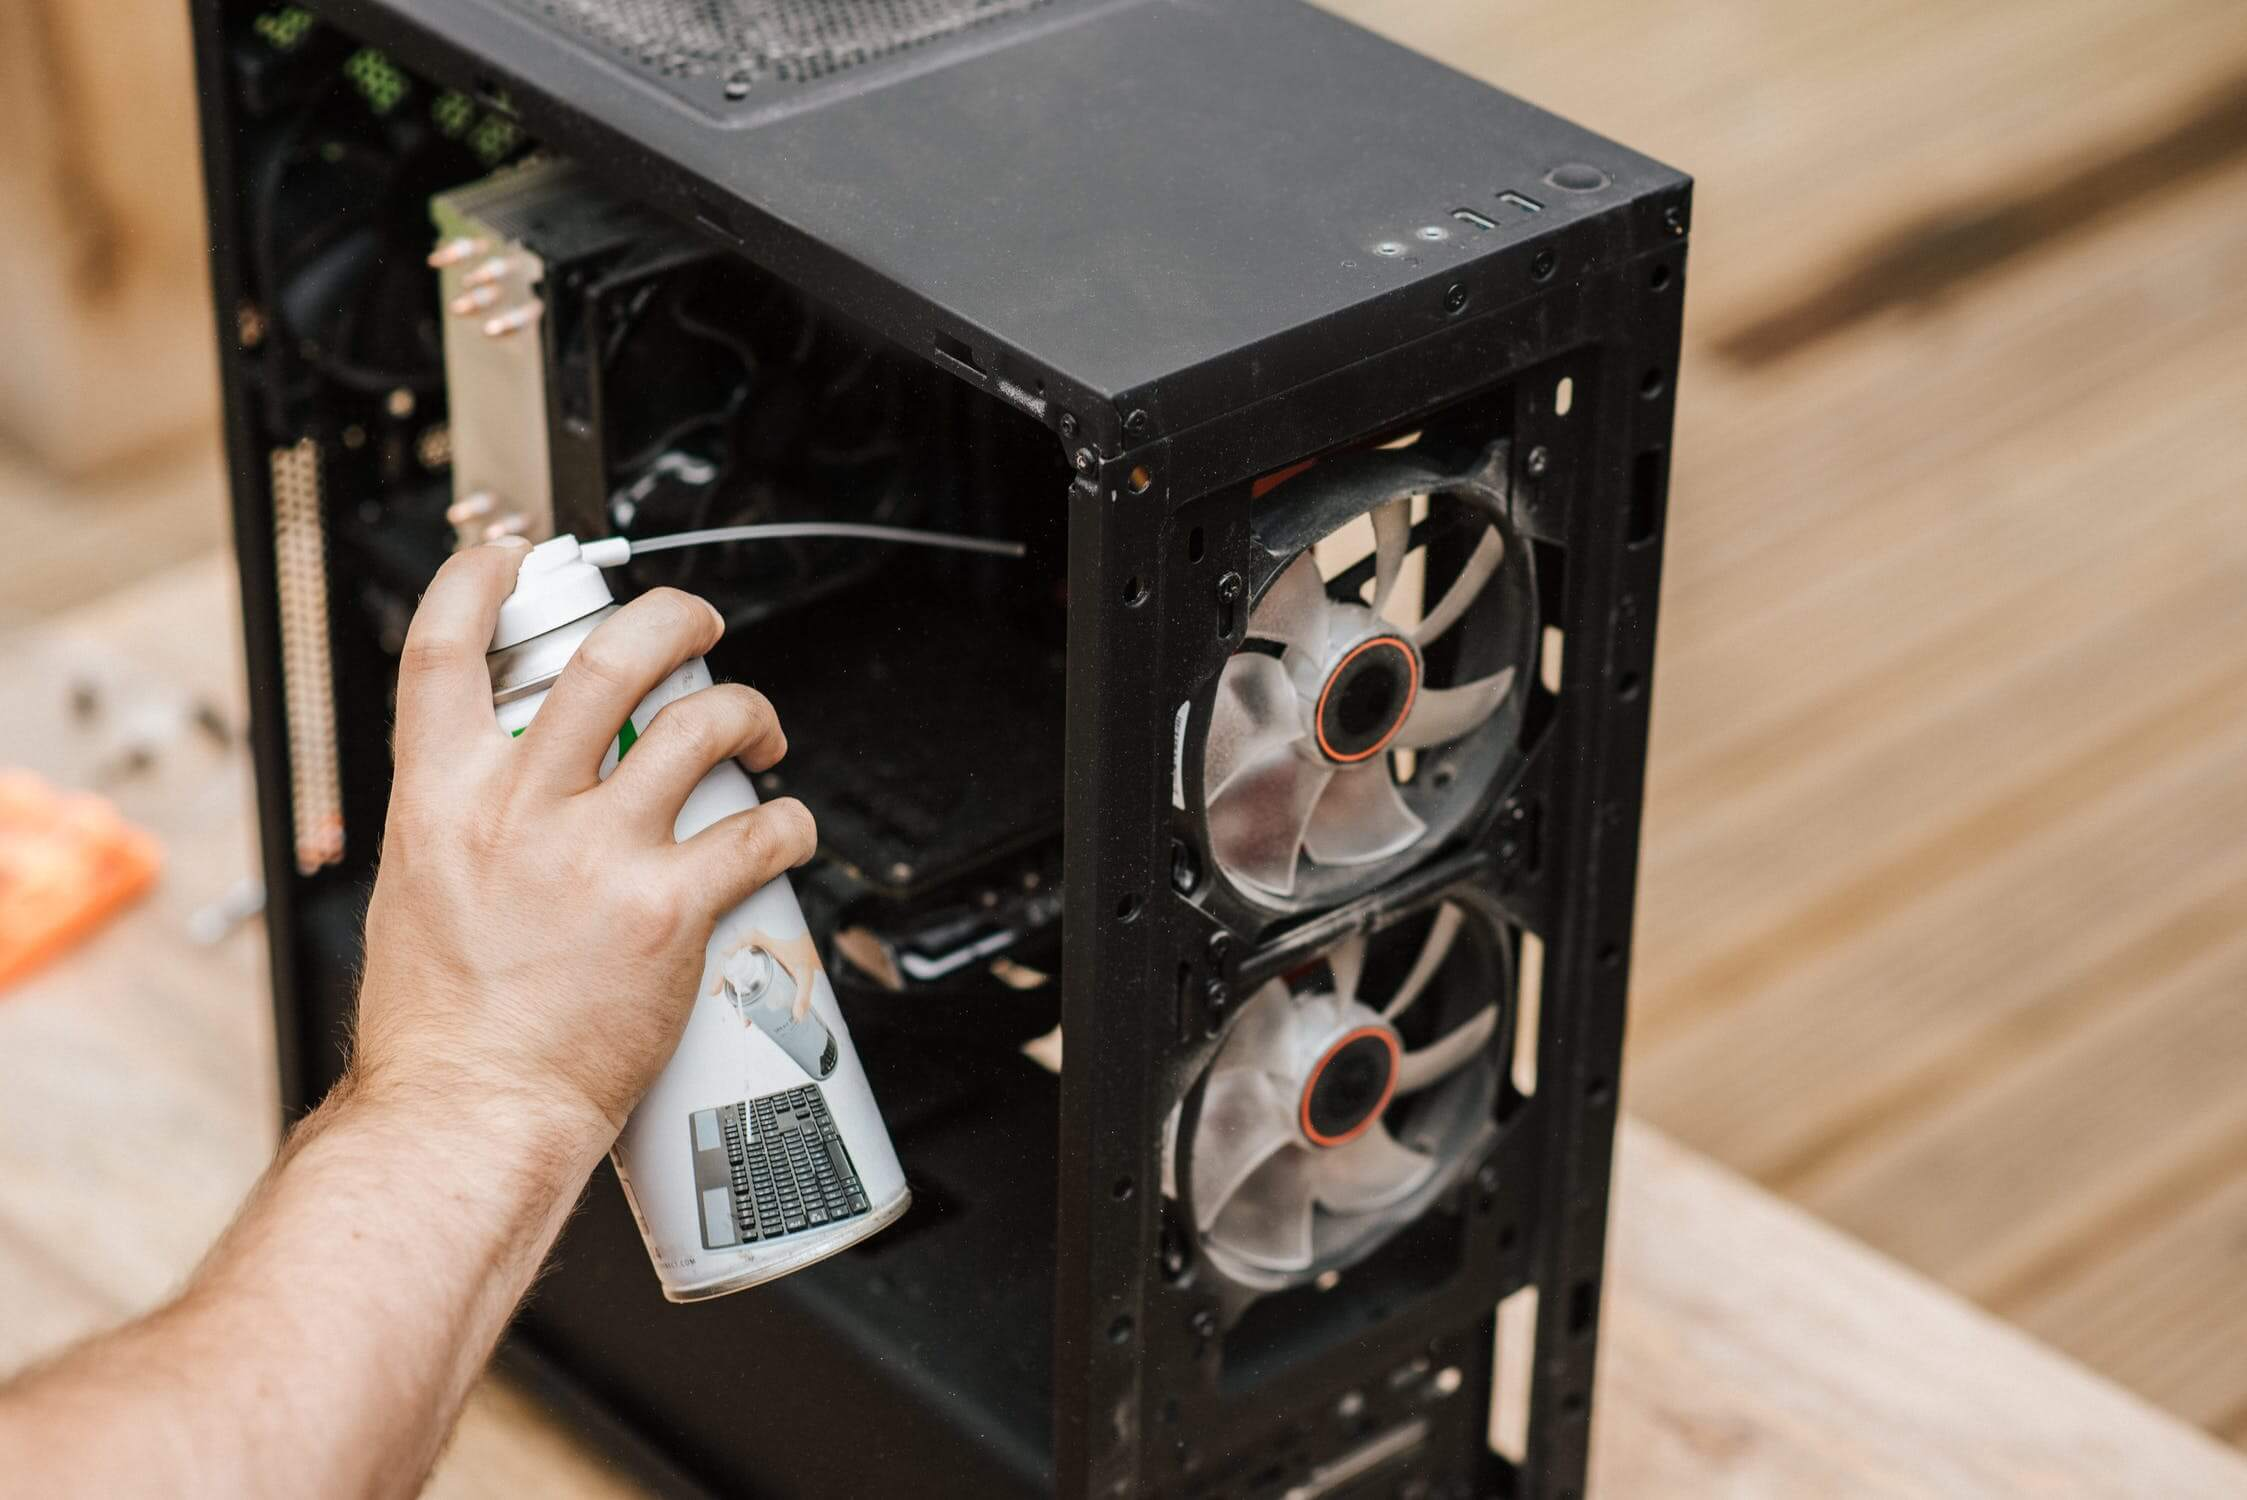 Using Compressed Air to clean a Motherboard